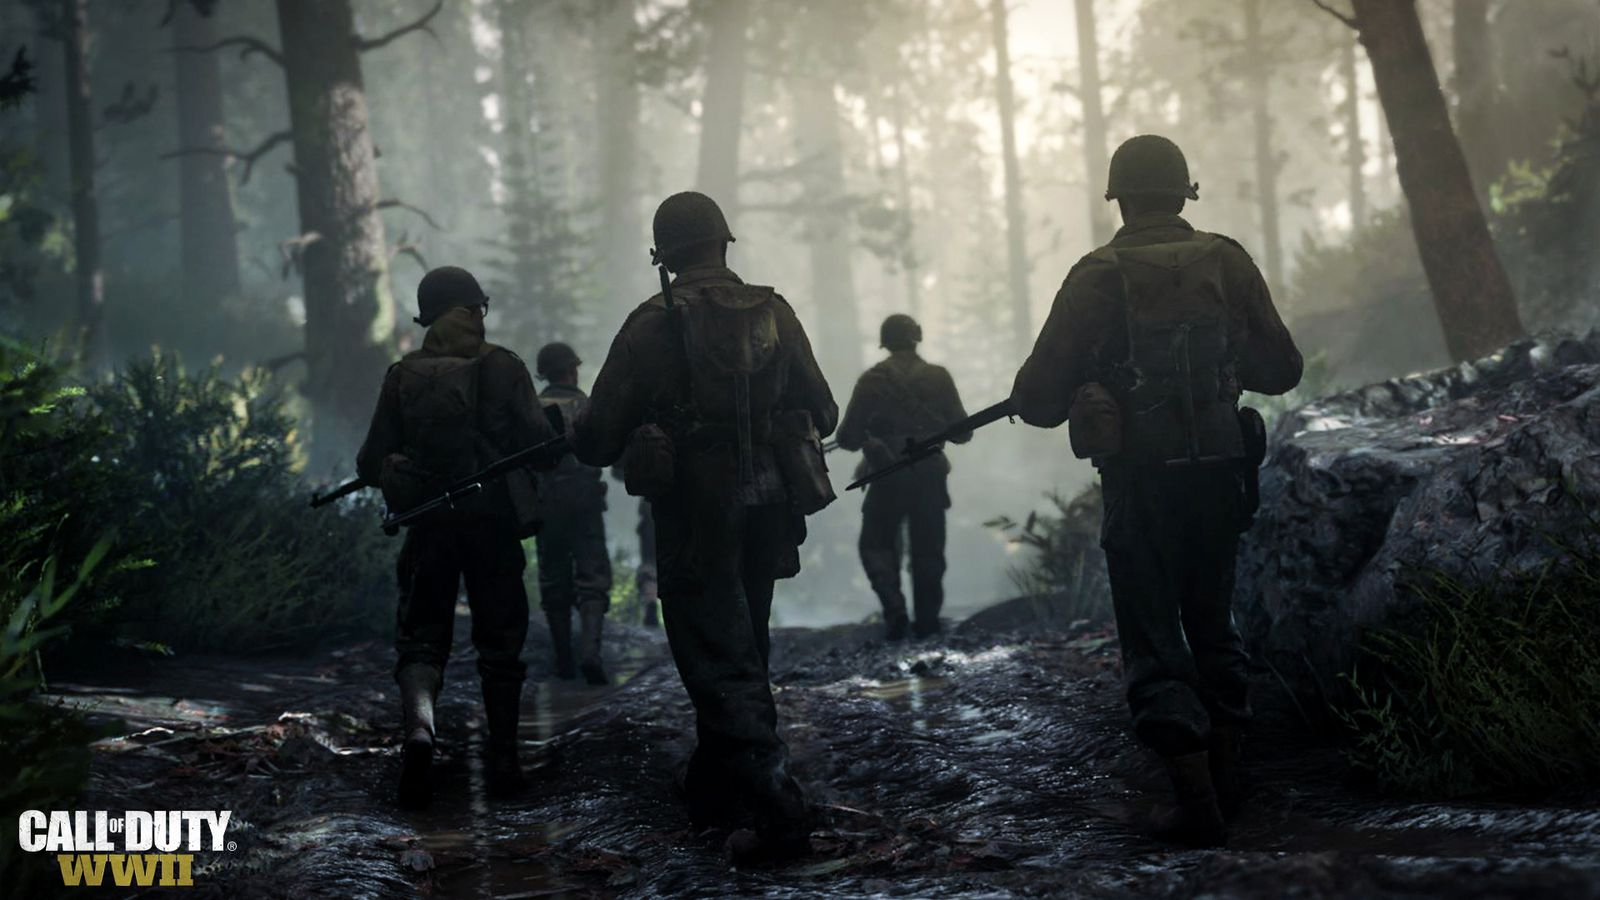 Call of Duty: WWII's 'diversity' is nothing more than marketing